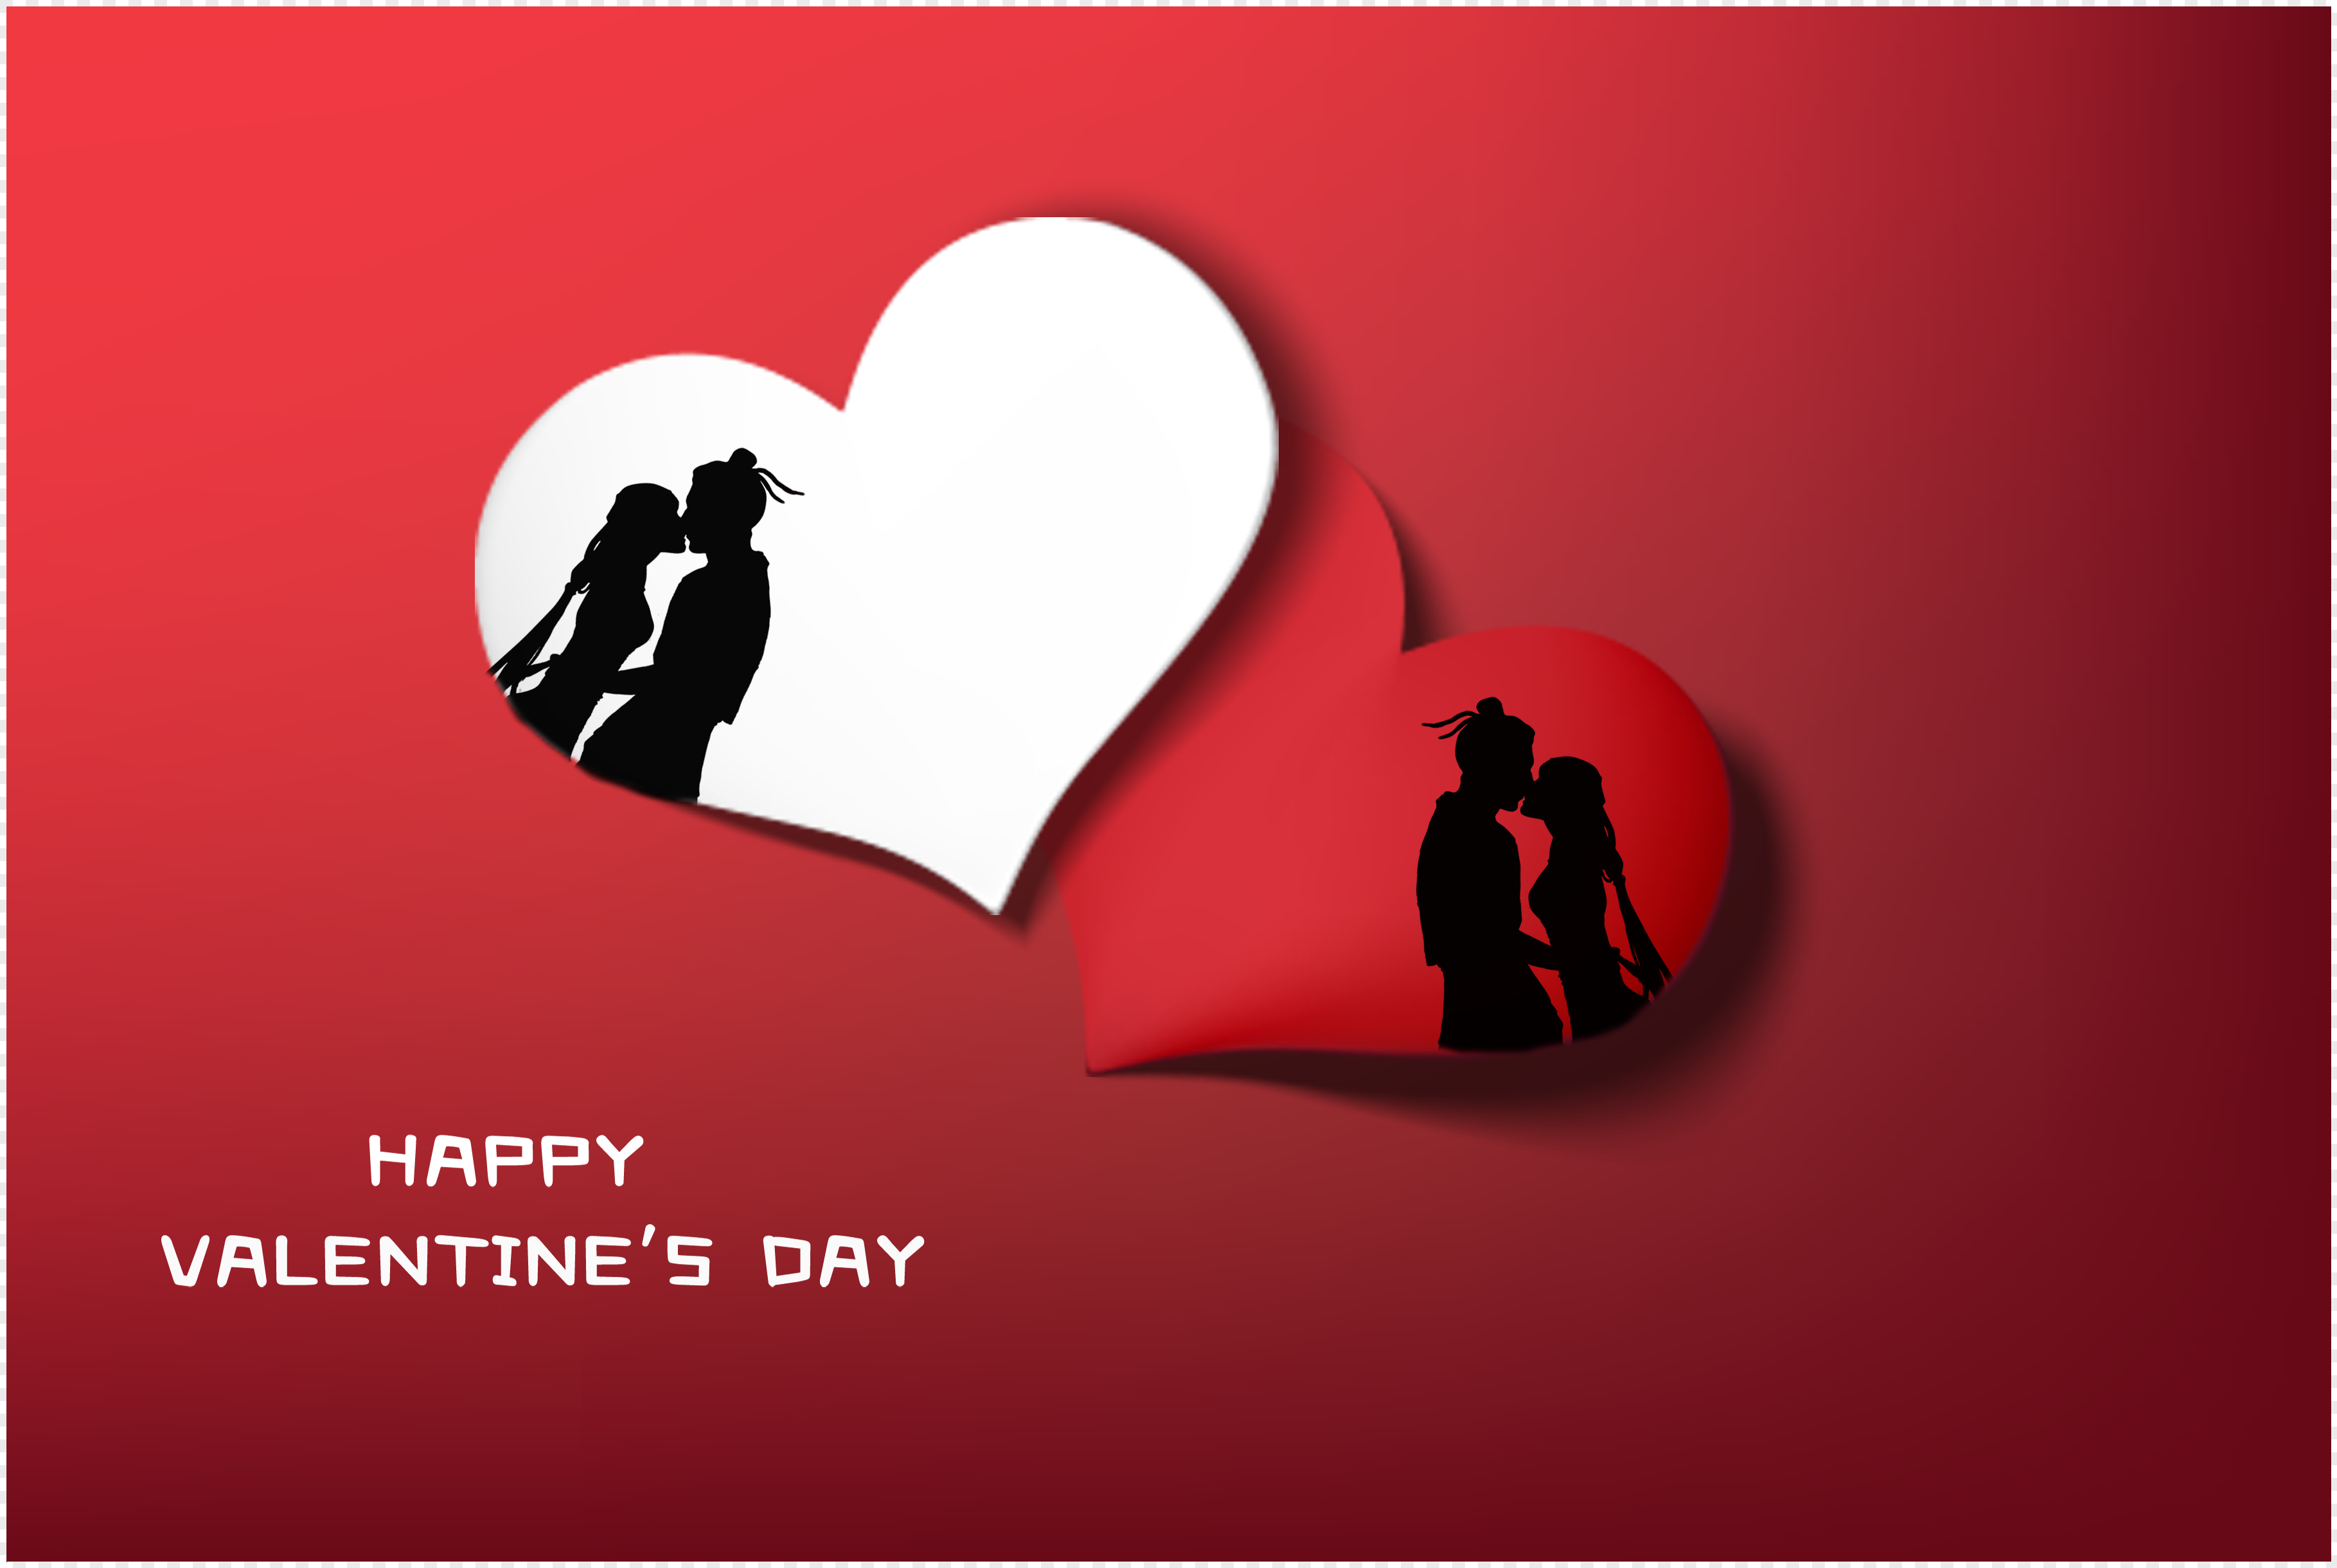 Tanabata Valentines Day Background Png Image Picture Free Download